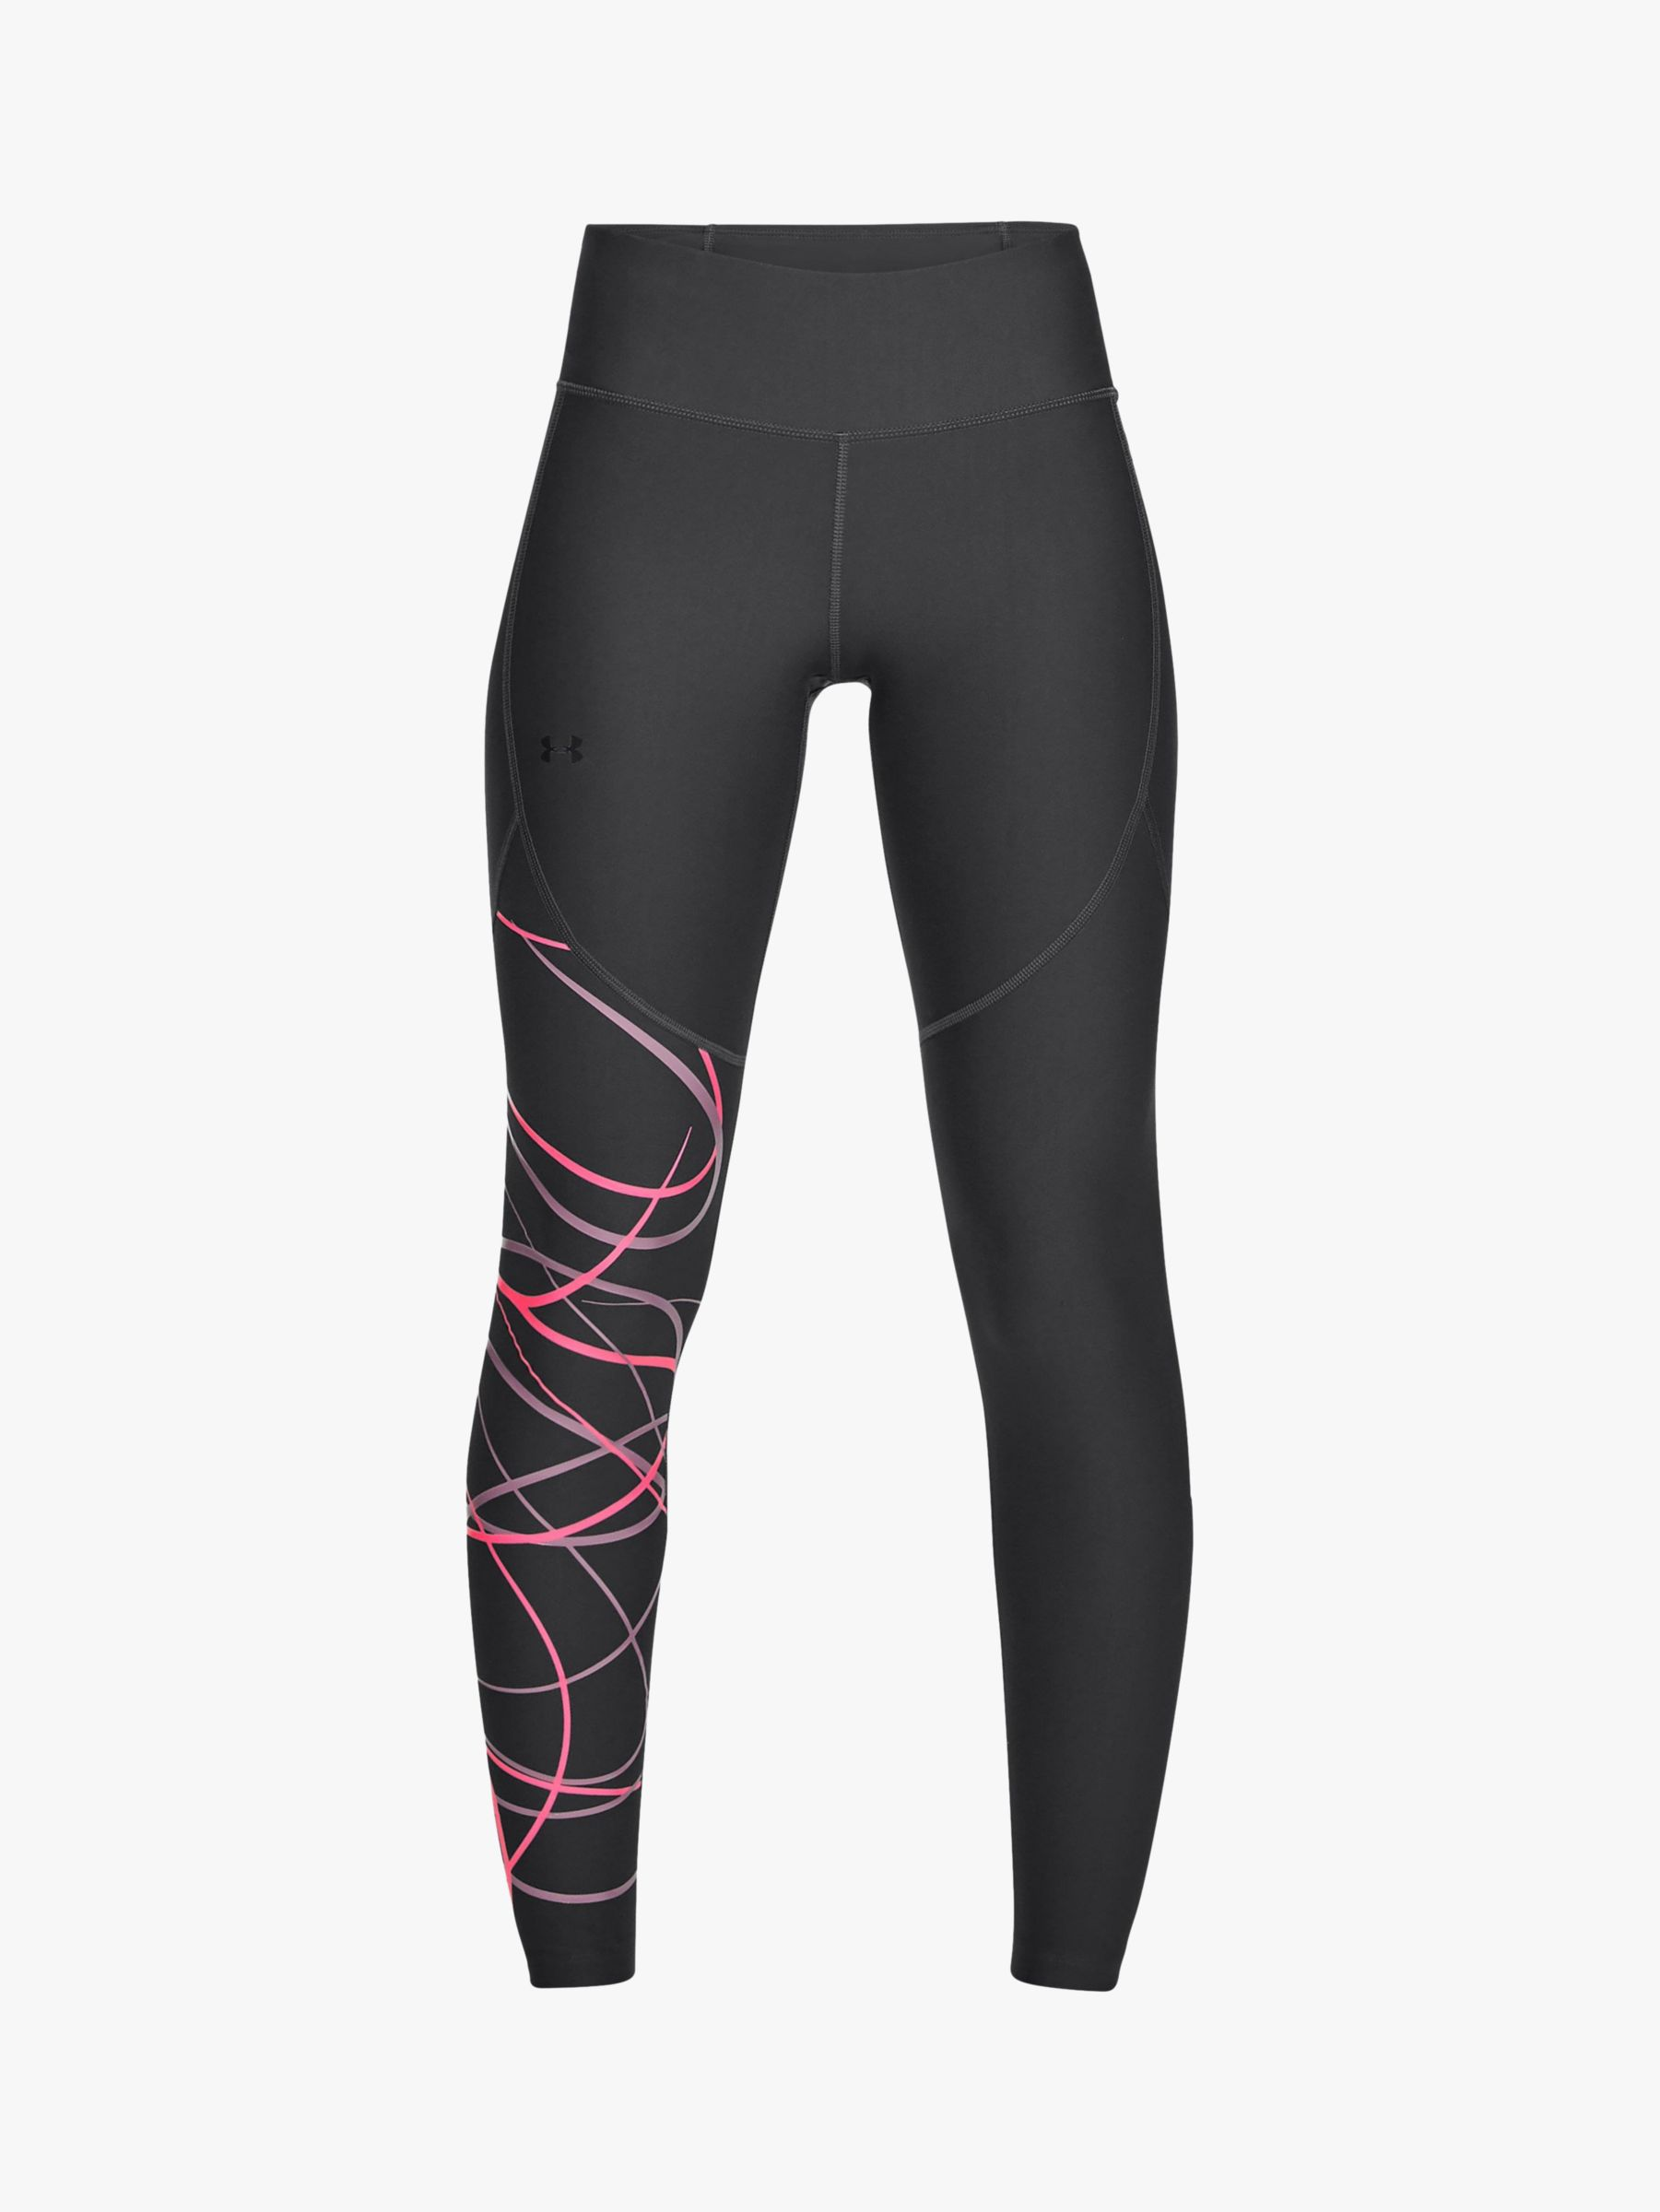 80ba1bf1b8c7ca Under Armour Vanish Graphic Training Tights, Black at John Lewis & Partners